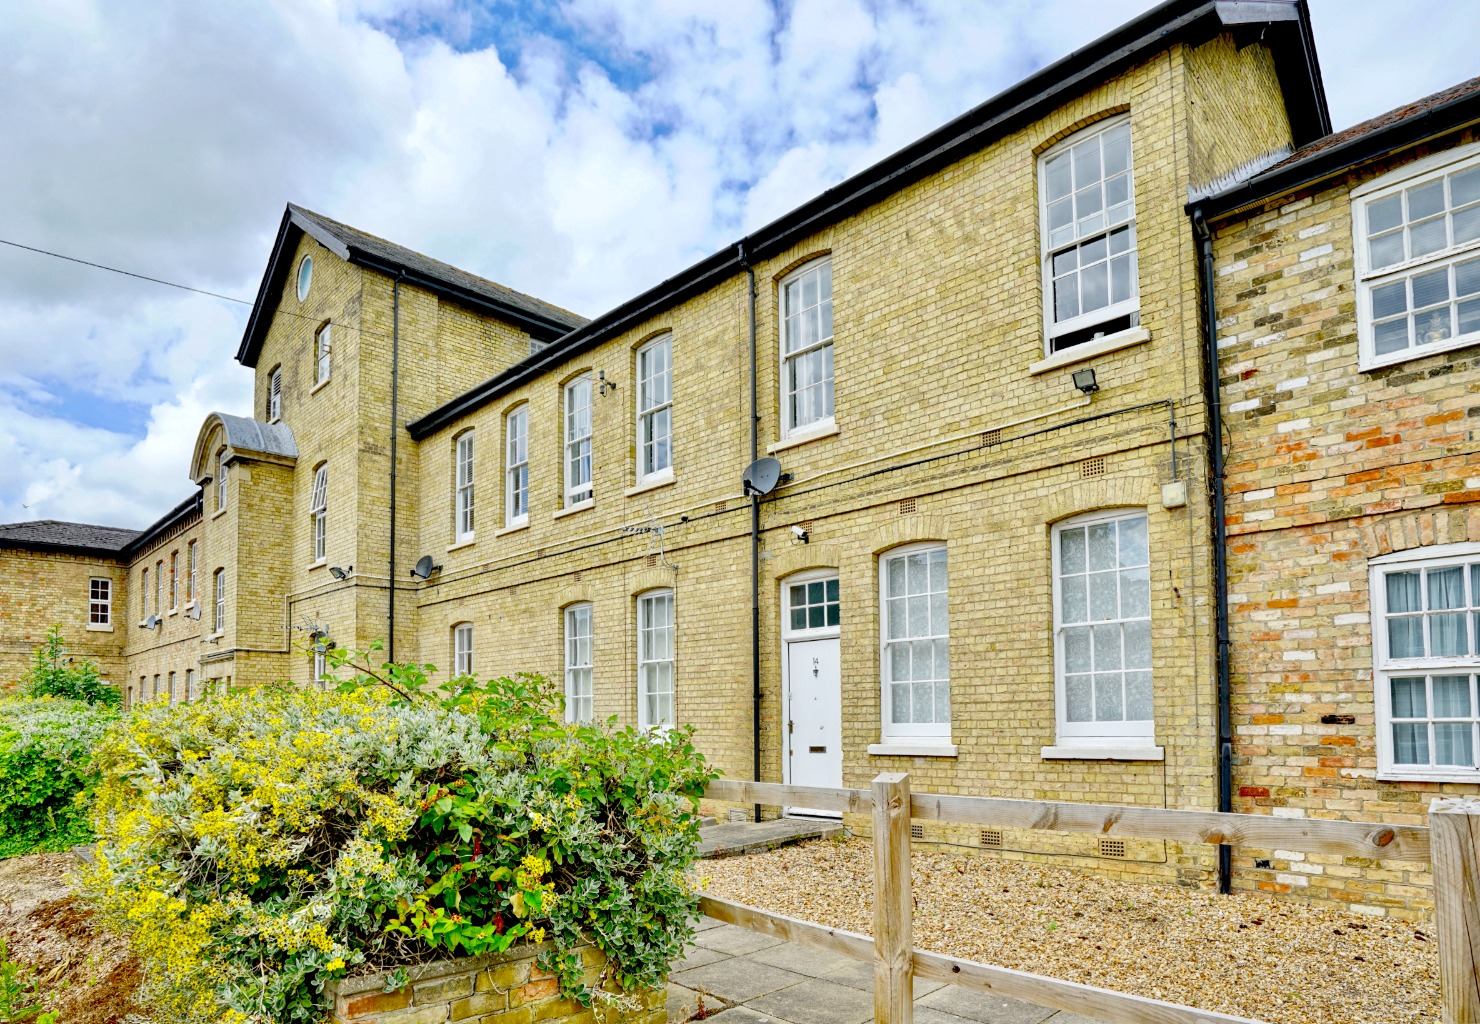 1 bed ground floor flat for sale in Linclare Place, St. Neots, PE19